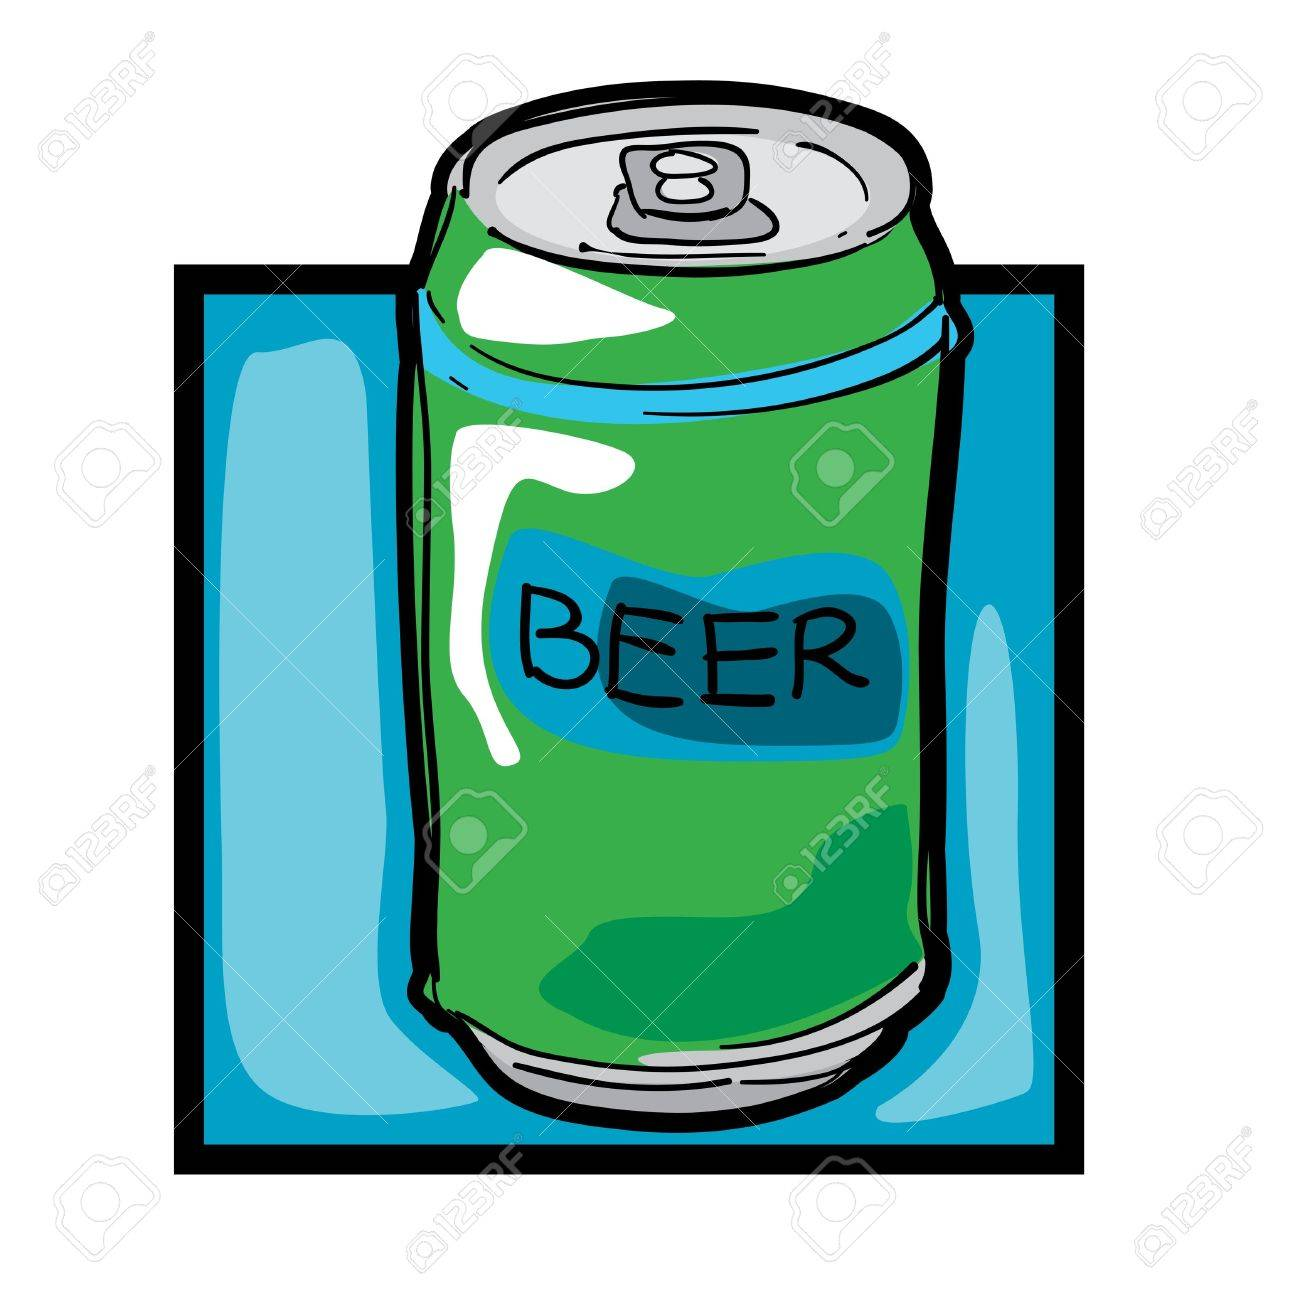 classic clip art graphic icon with beer can royalty free cliparts rh 123rf com beer can chicken clip art beer can pictures clip art